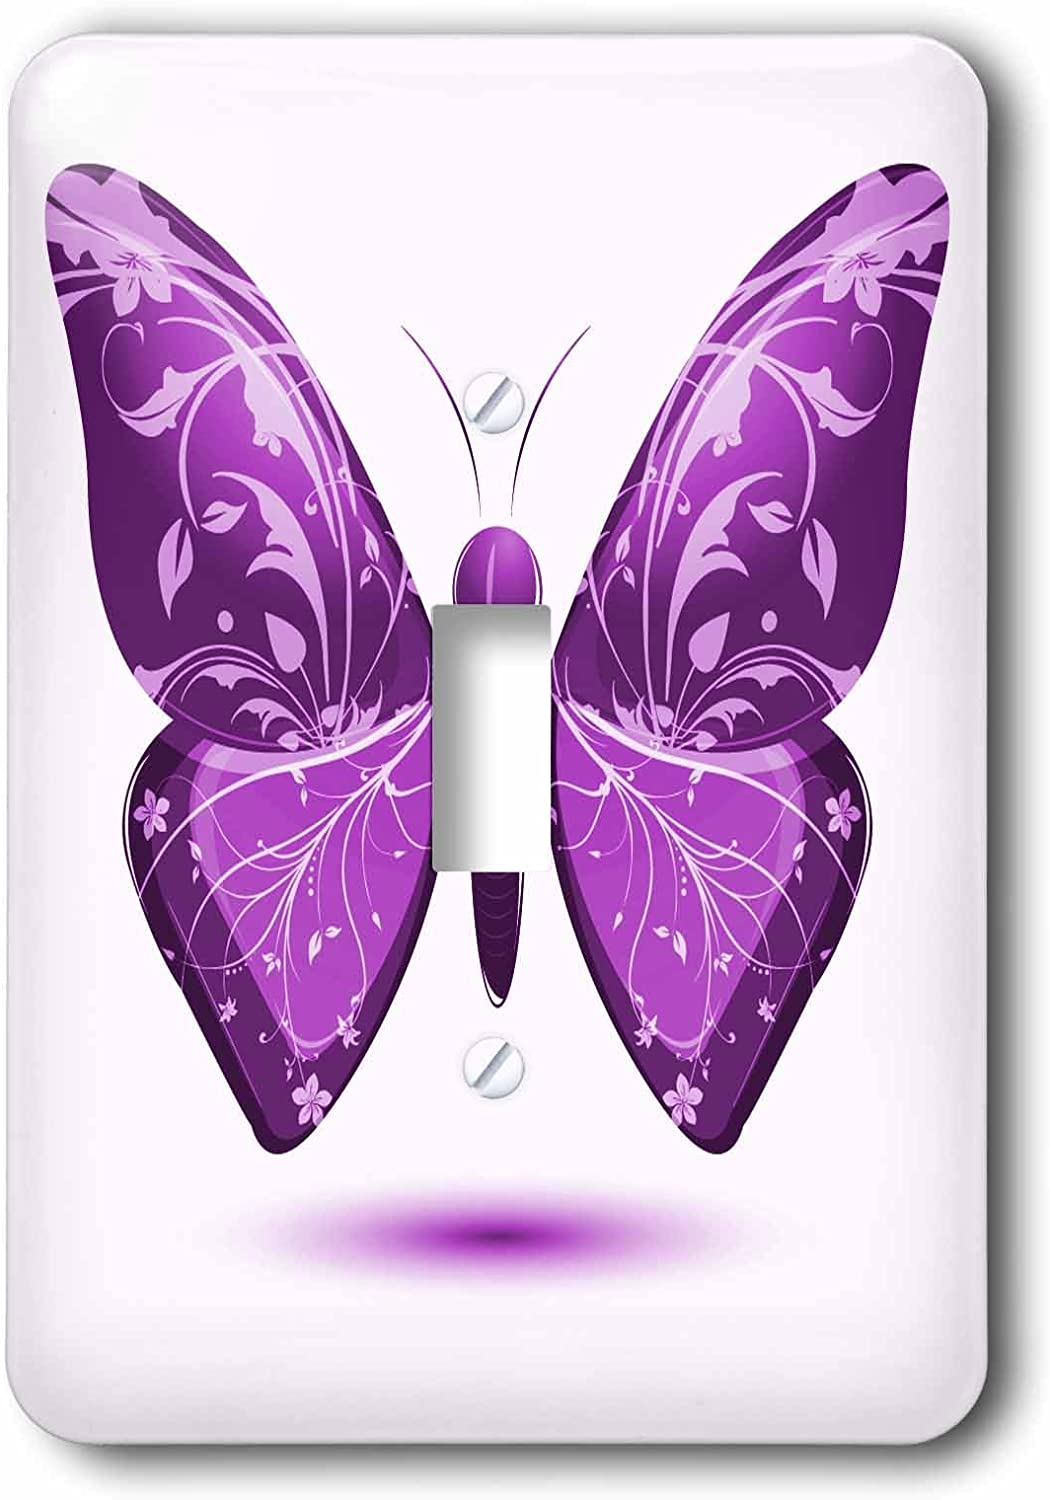 3drose Lsp 101576 1 Large Purple Butterfly With Flourish Wings Single Toggle Switch Multicolor Switch Plates Amazon Com